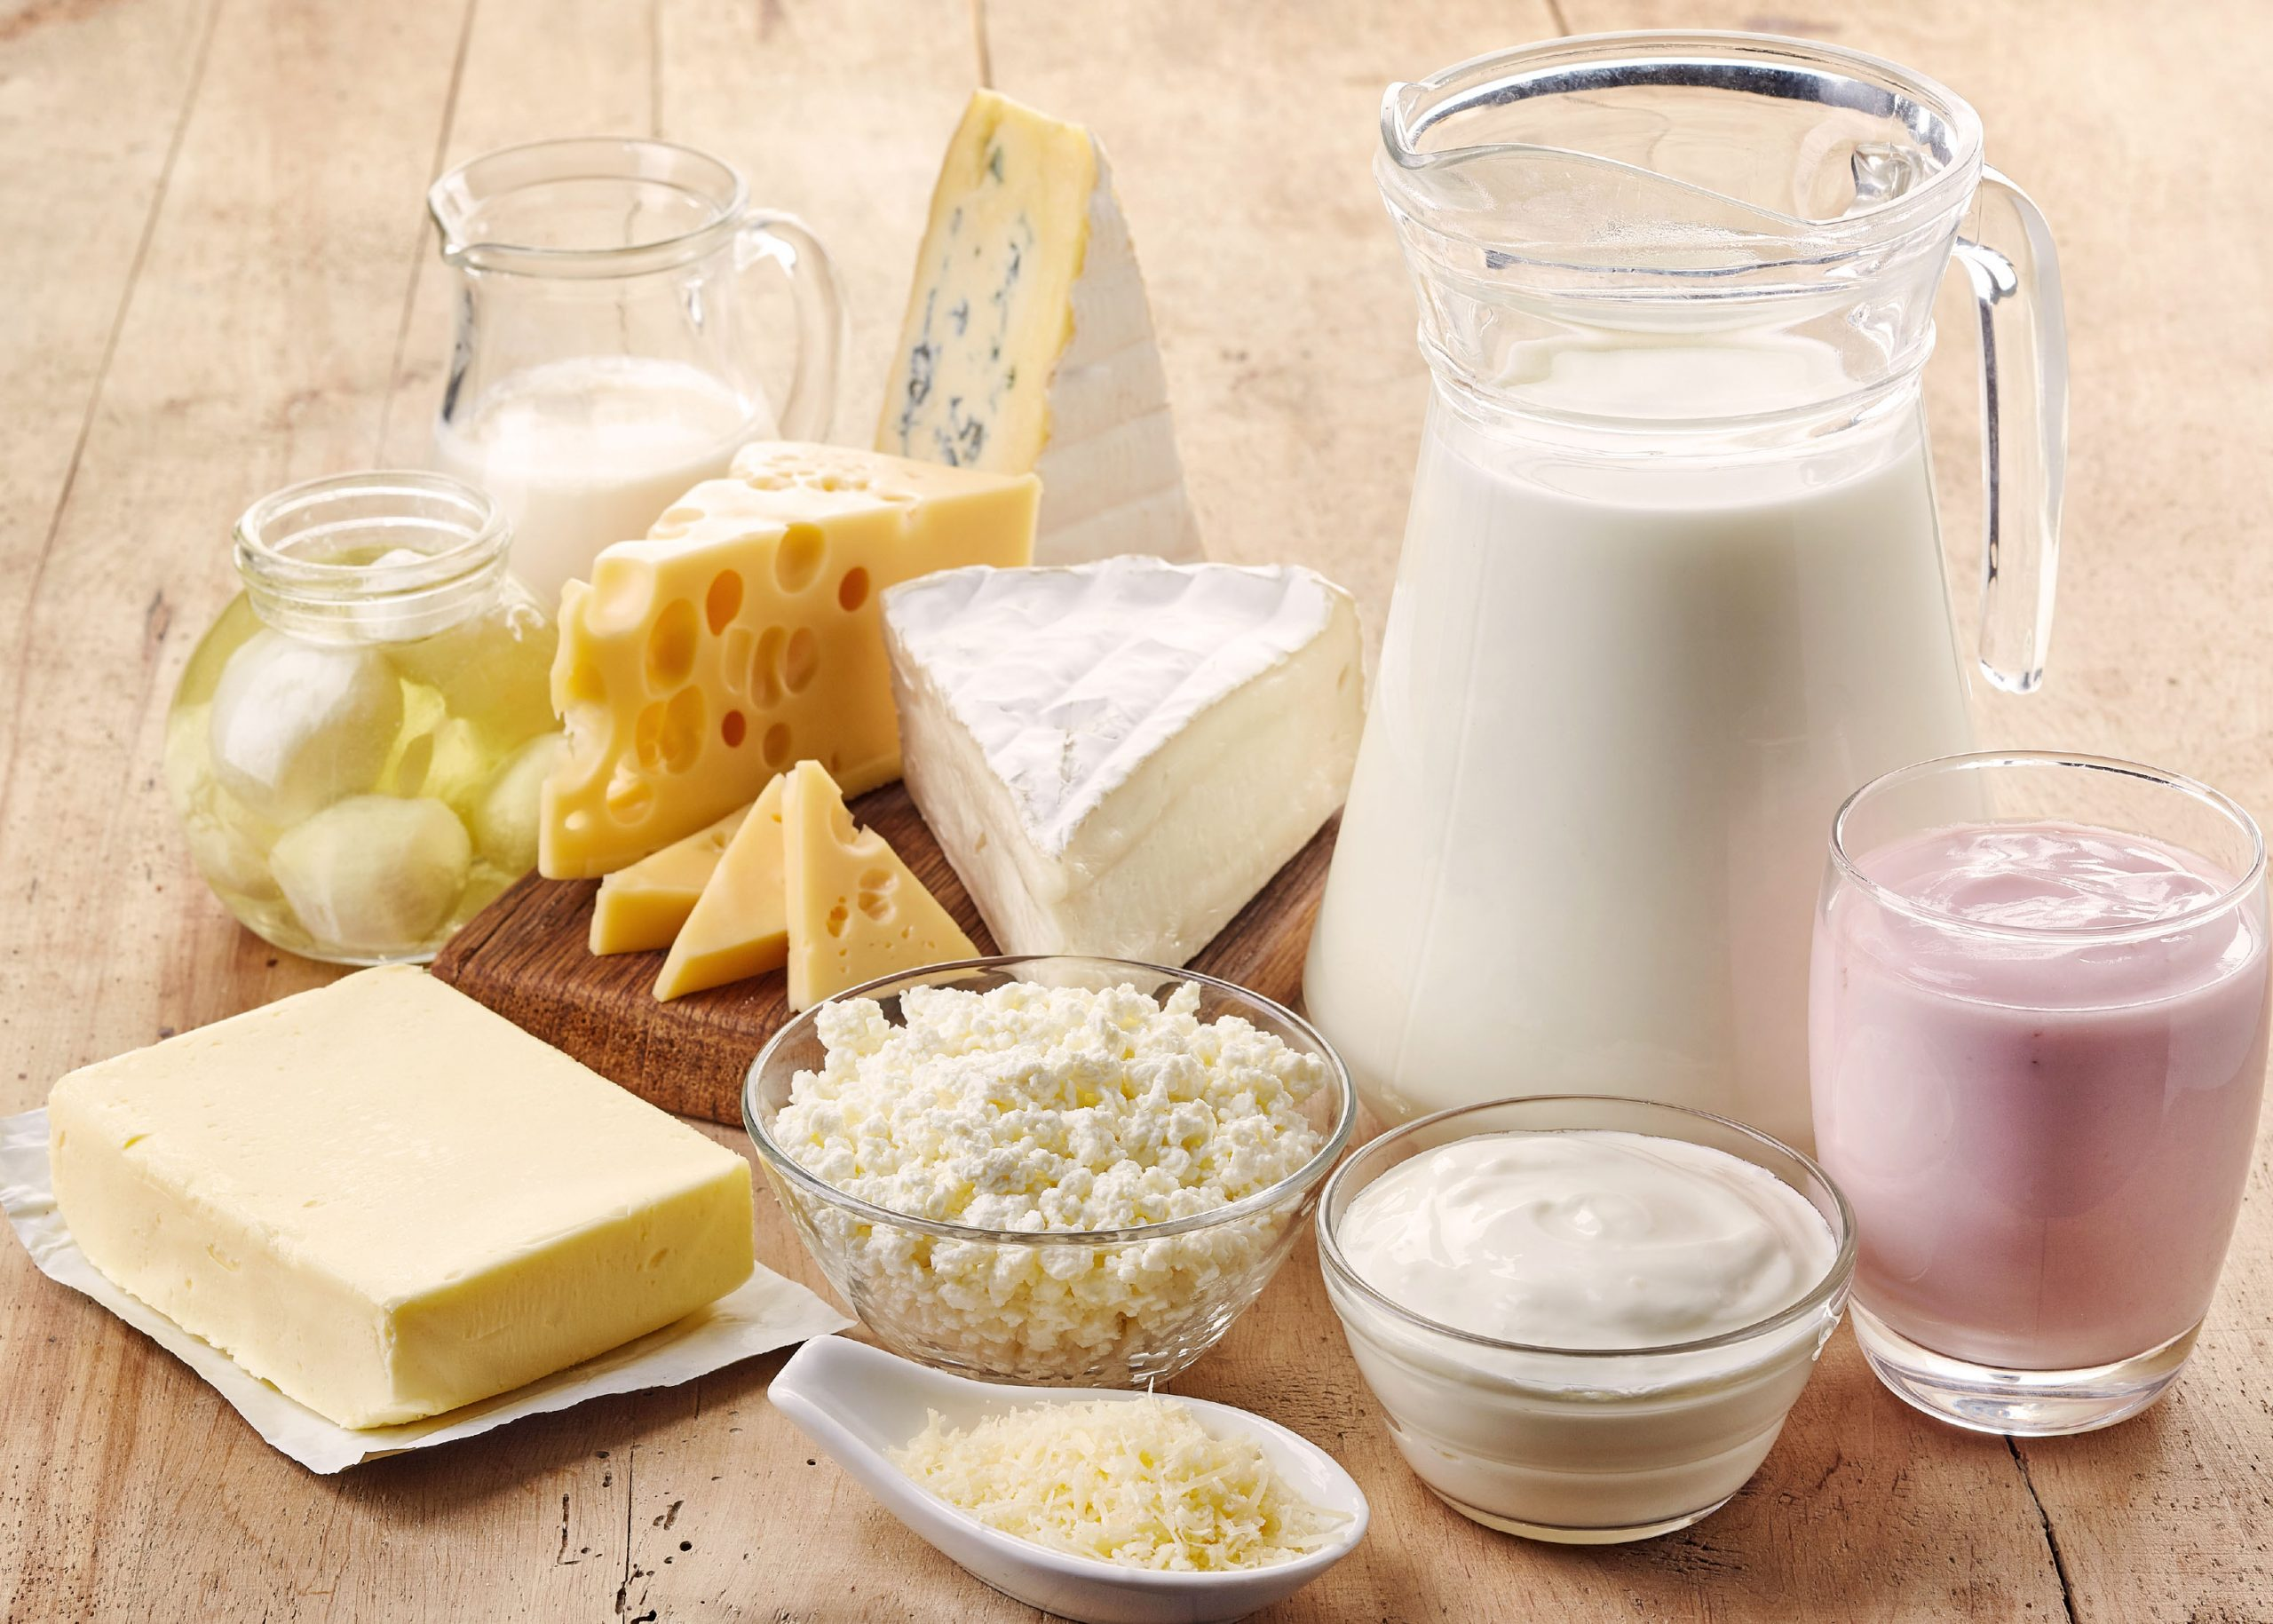 10 Foods That Give Dogs Gas - Dairy products